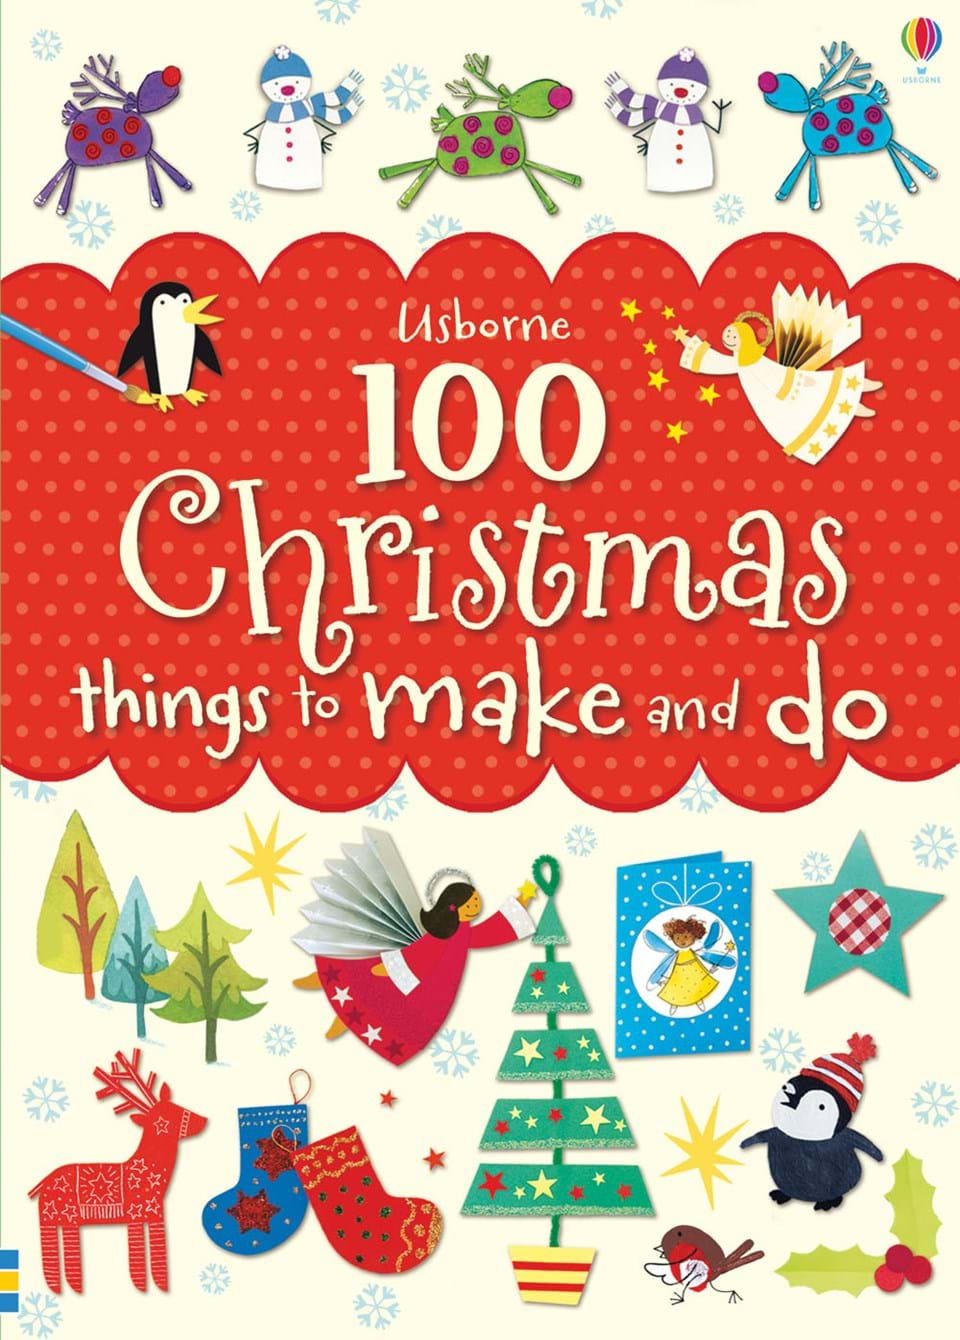 100 christmas things to make and do at usborne books at home for Cool things to make and do